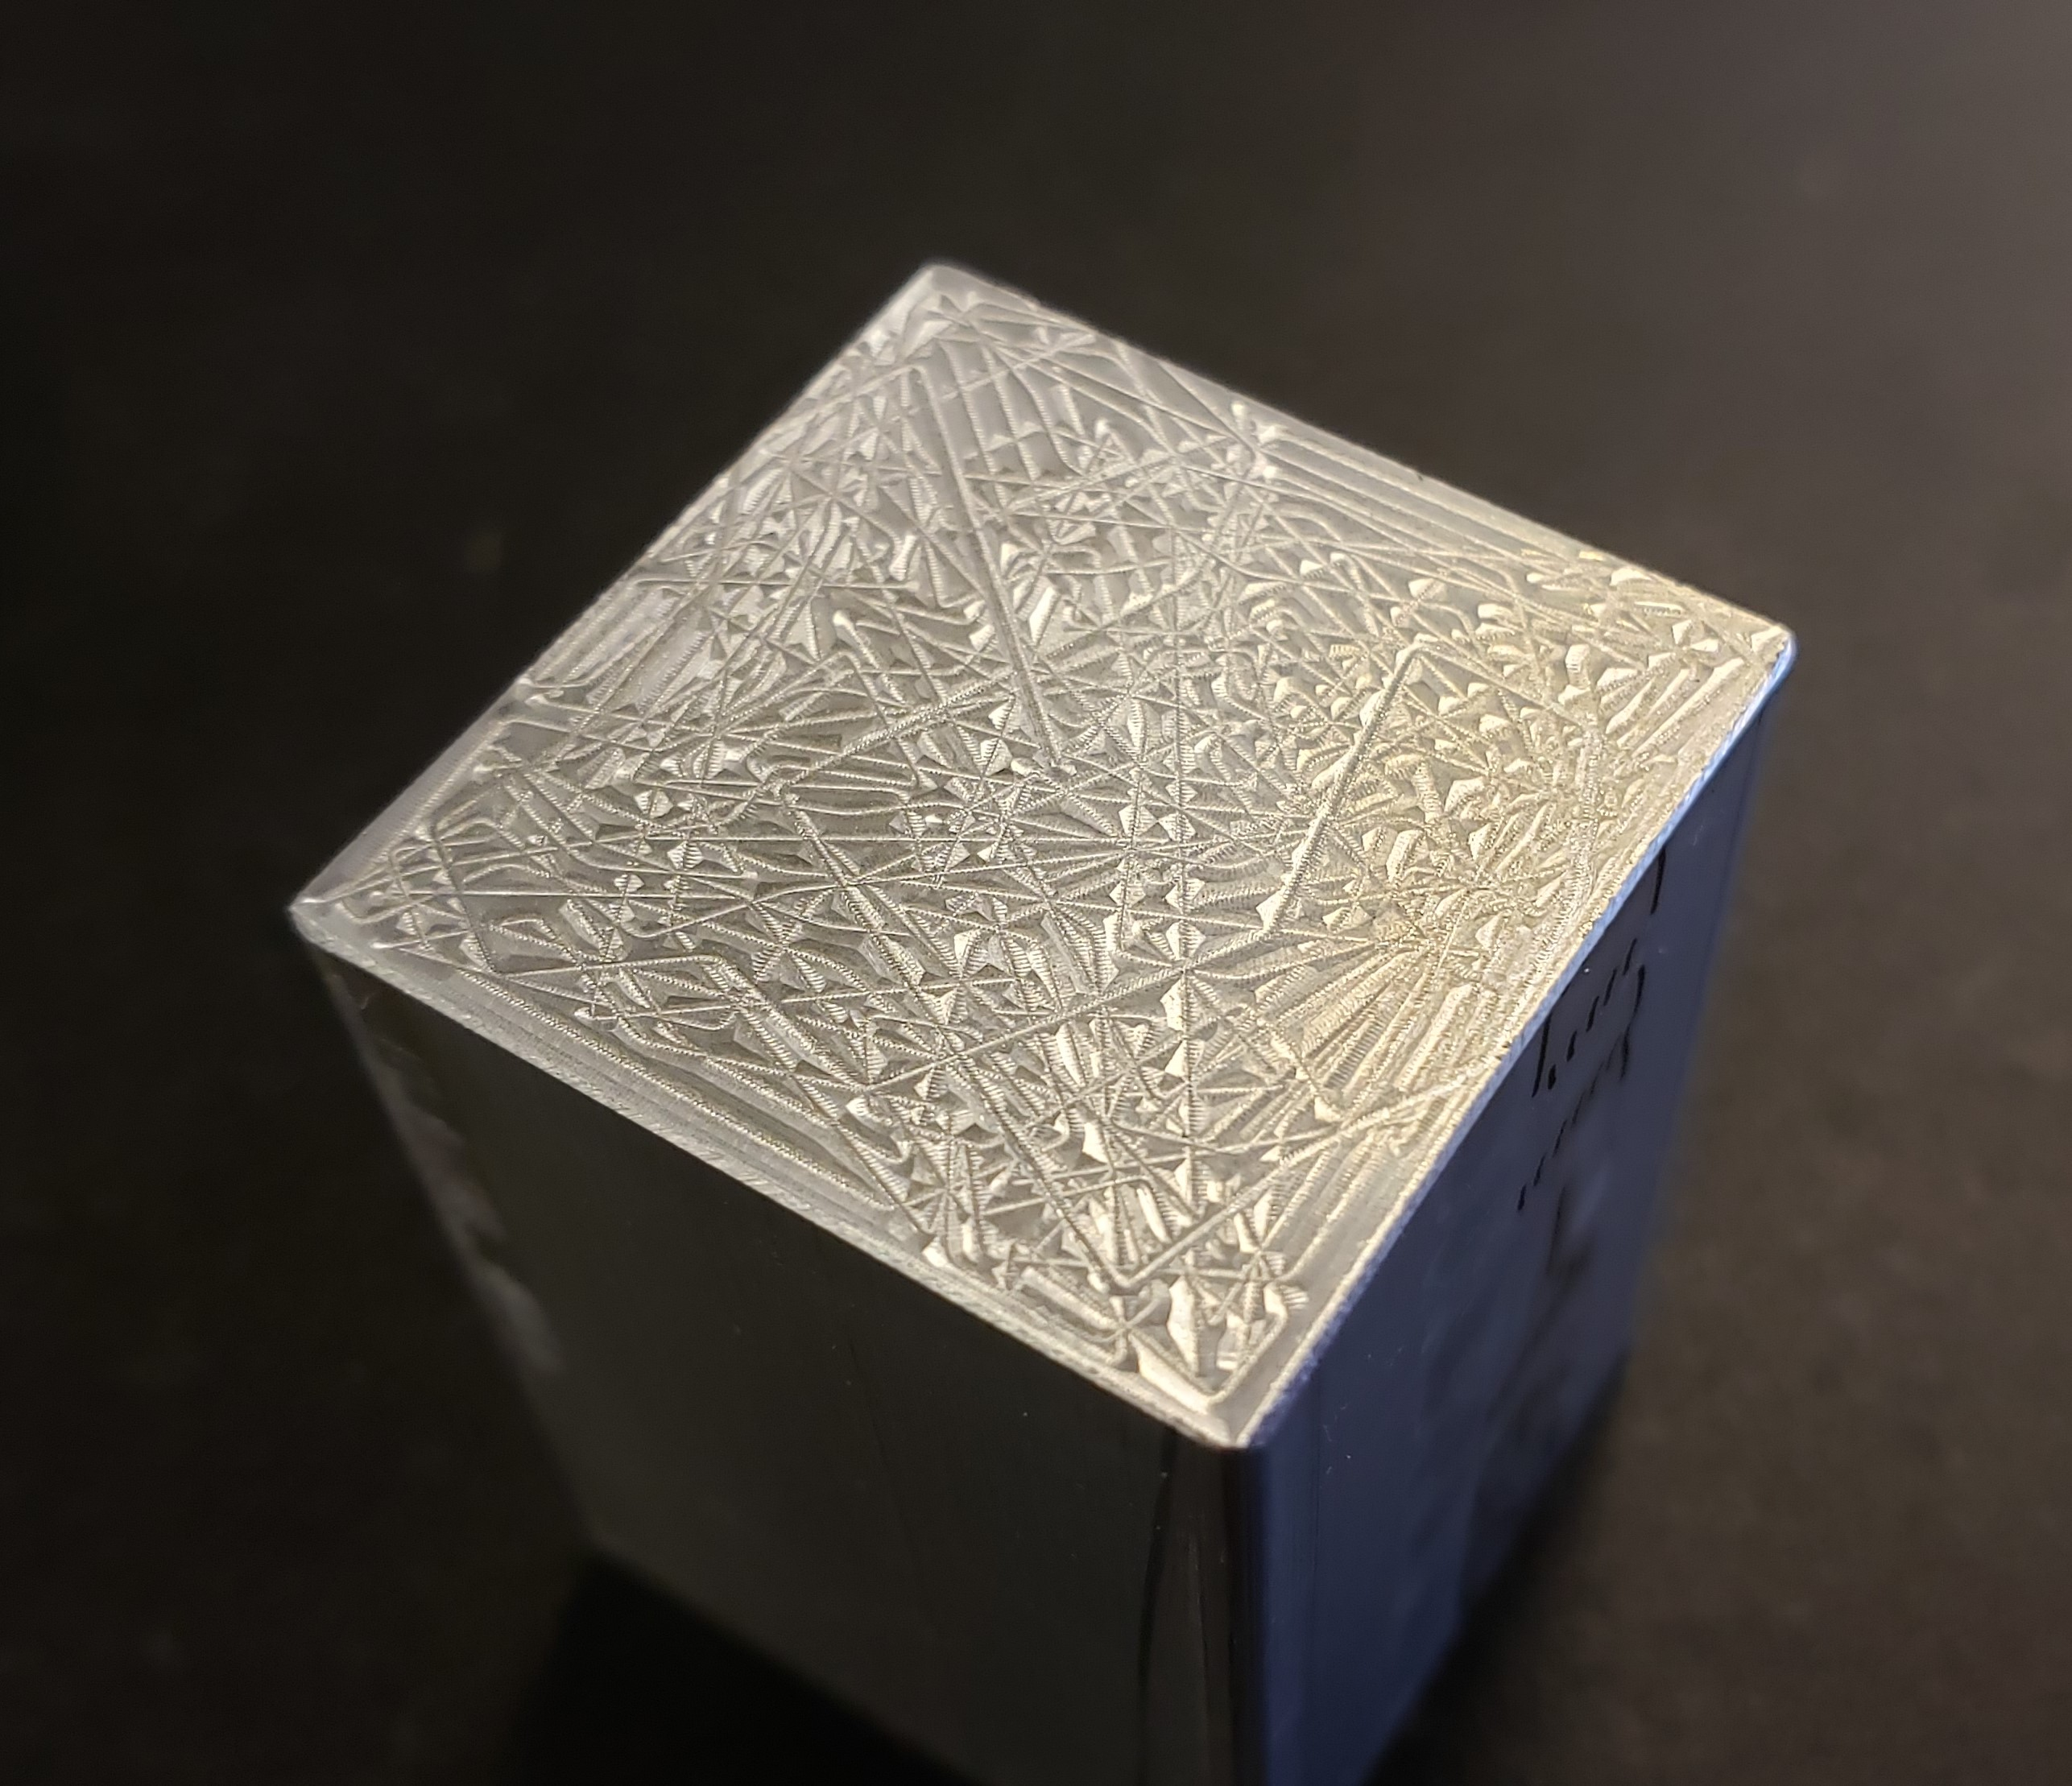 Stochastic toolpath experiment